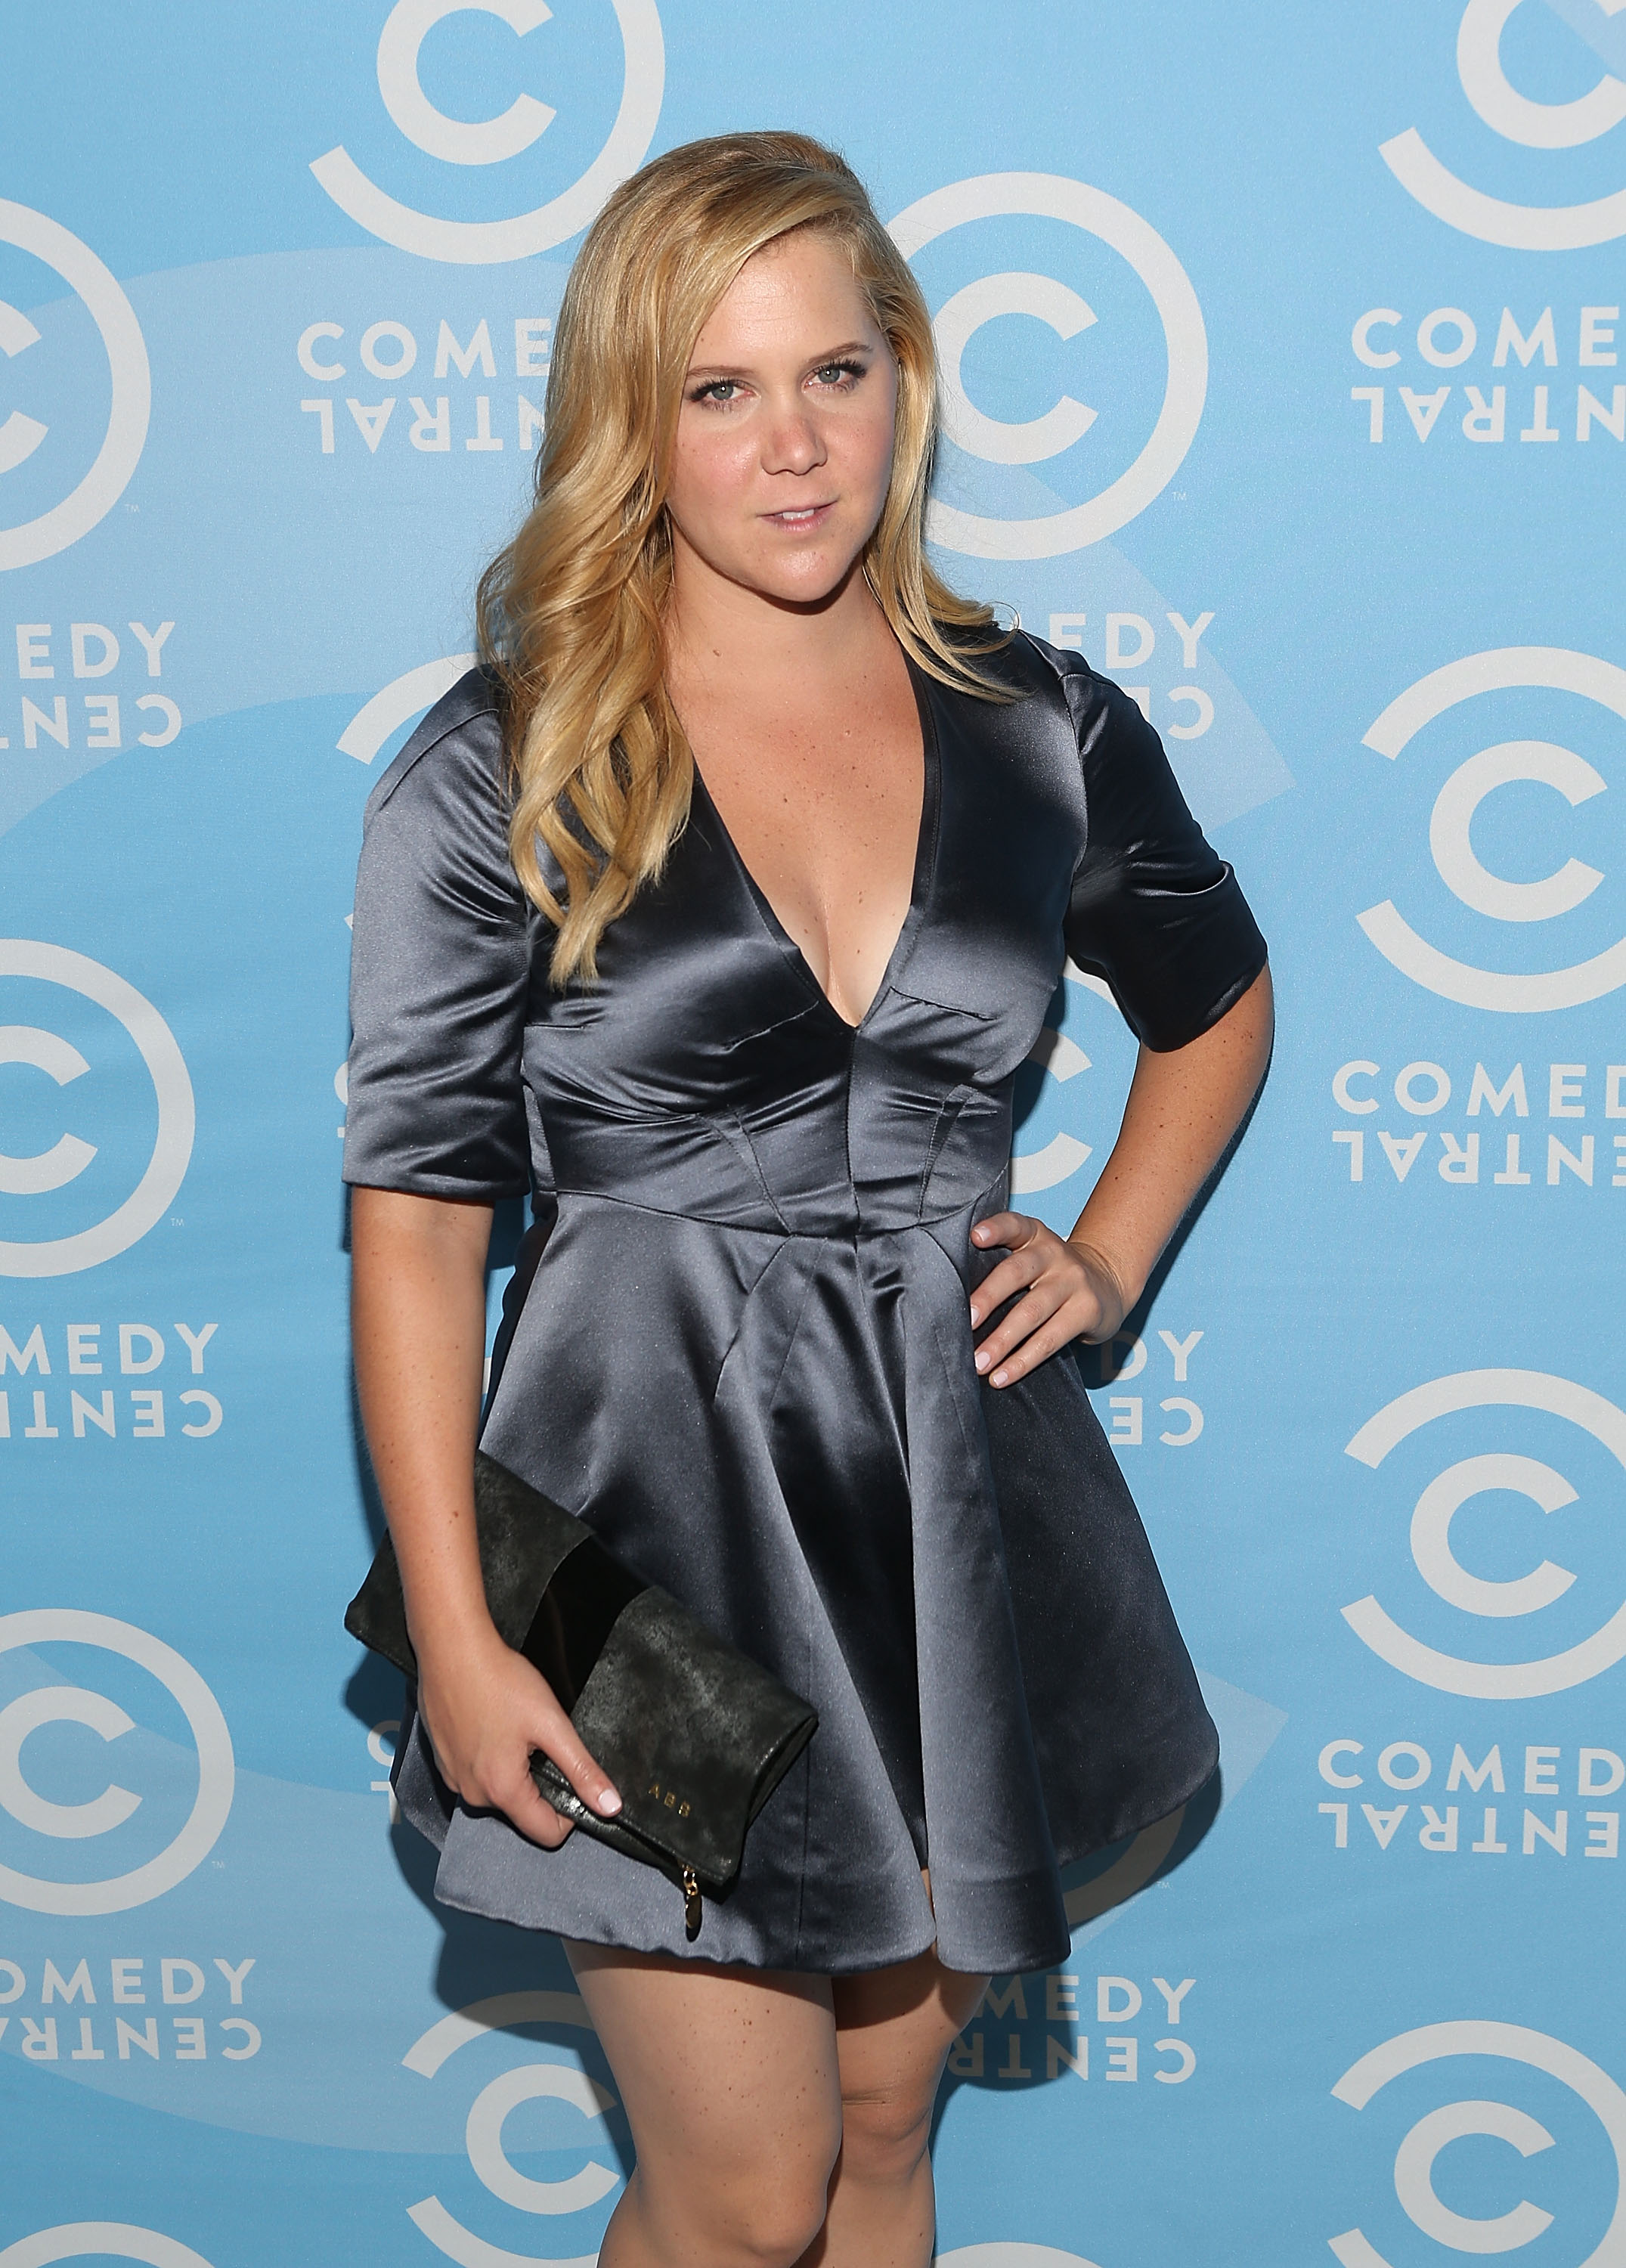 Amy Schumer S Tennis Sketch Brilliantly Skewers The Media